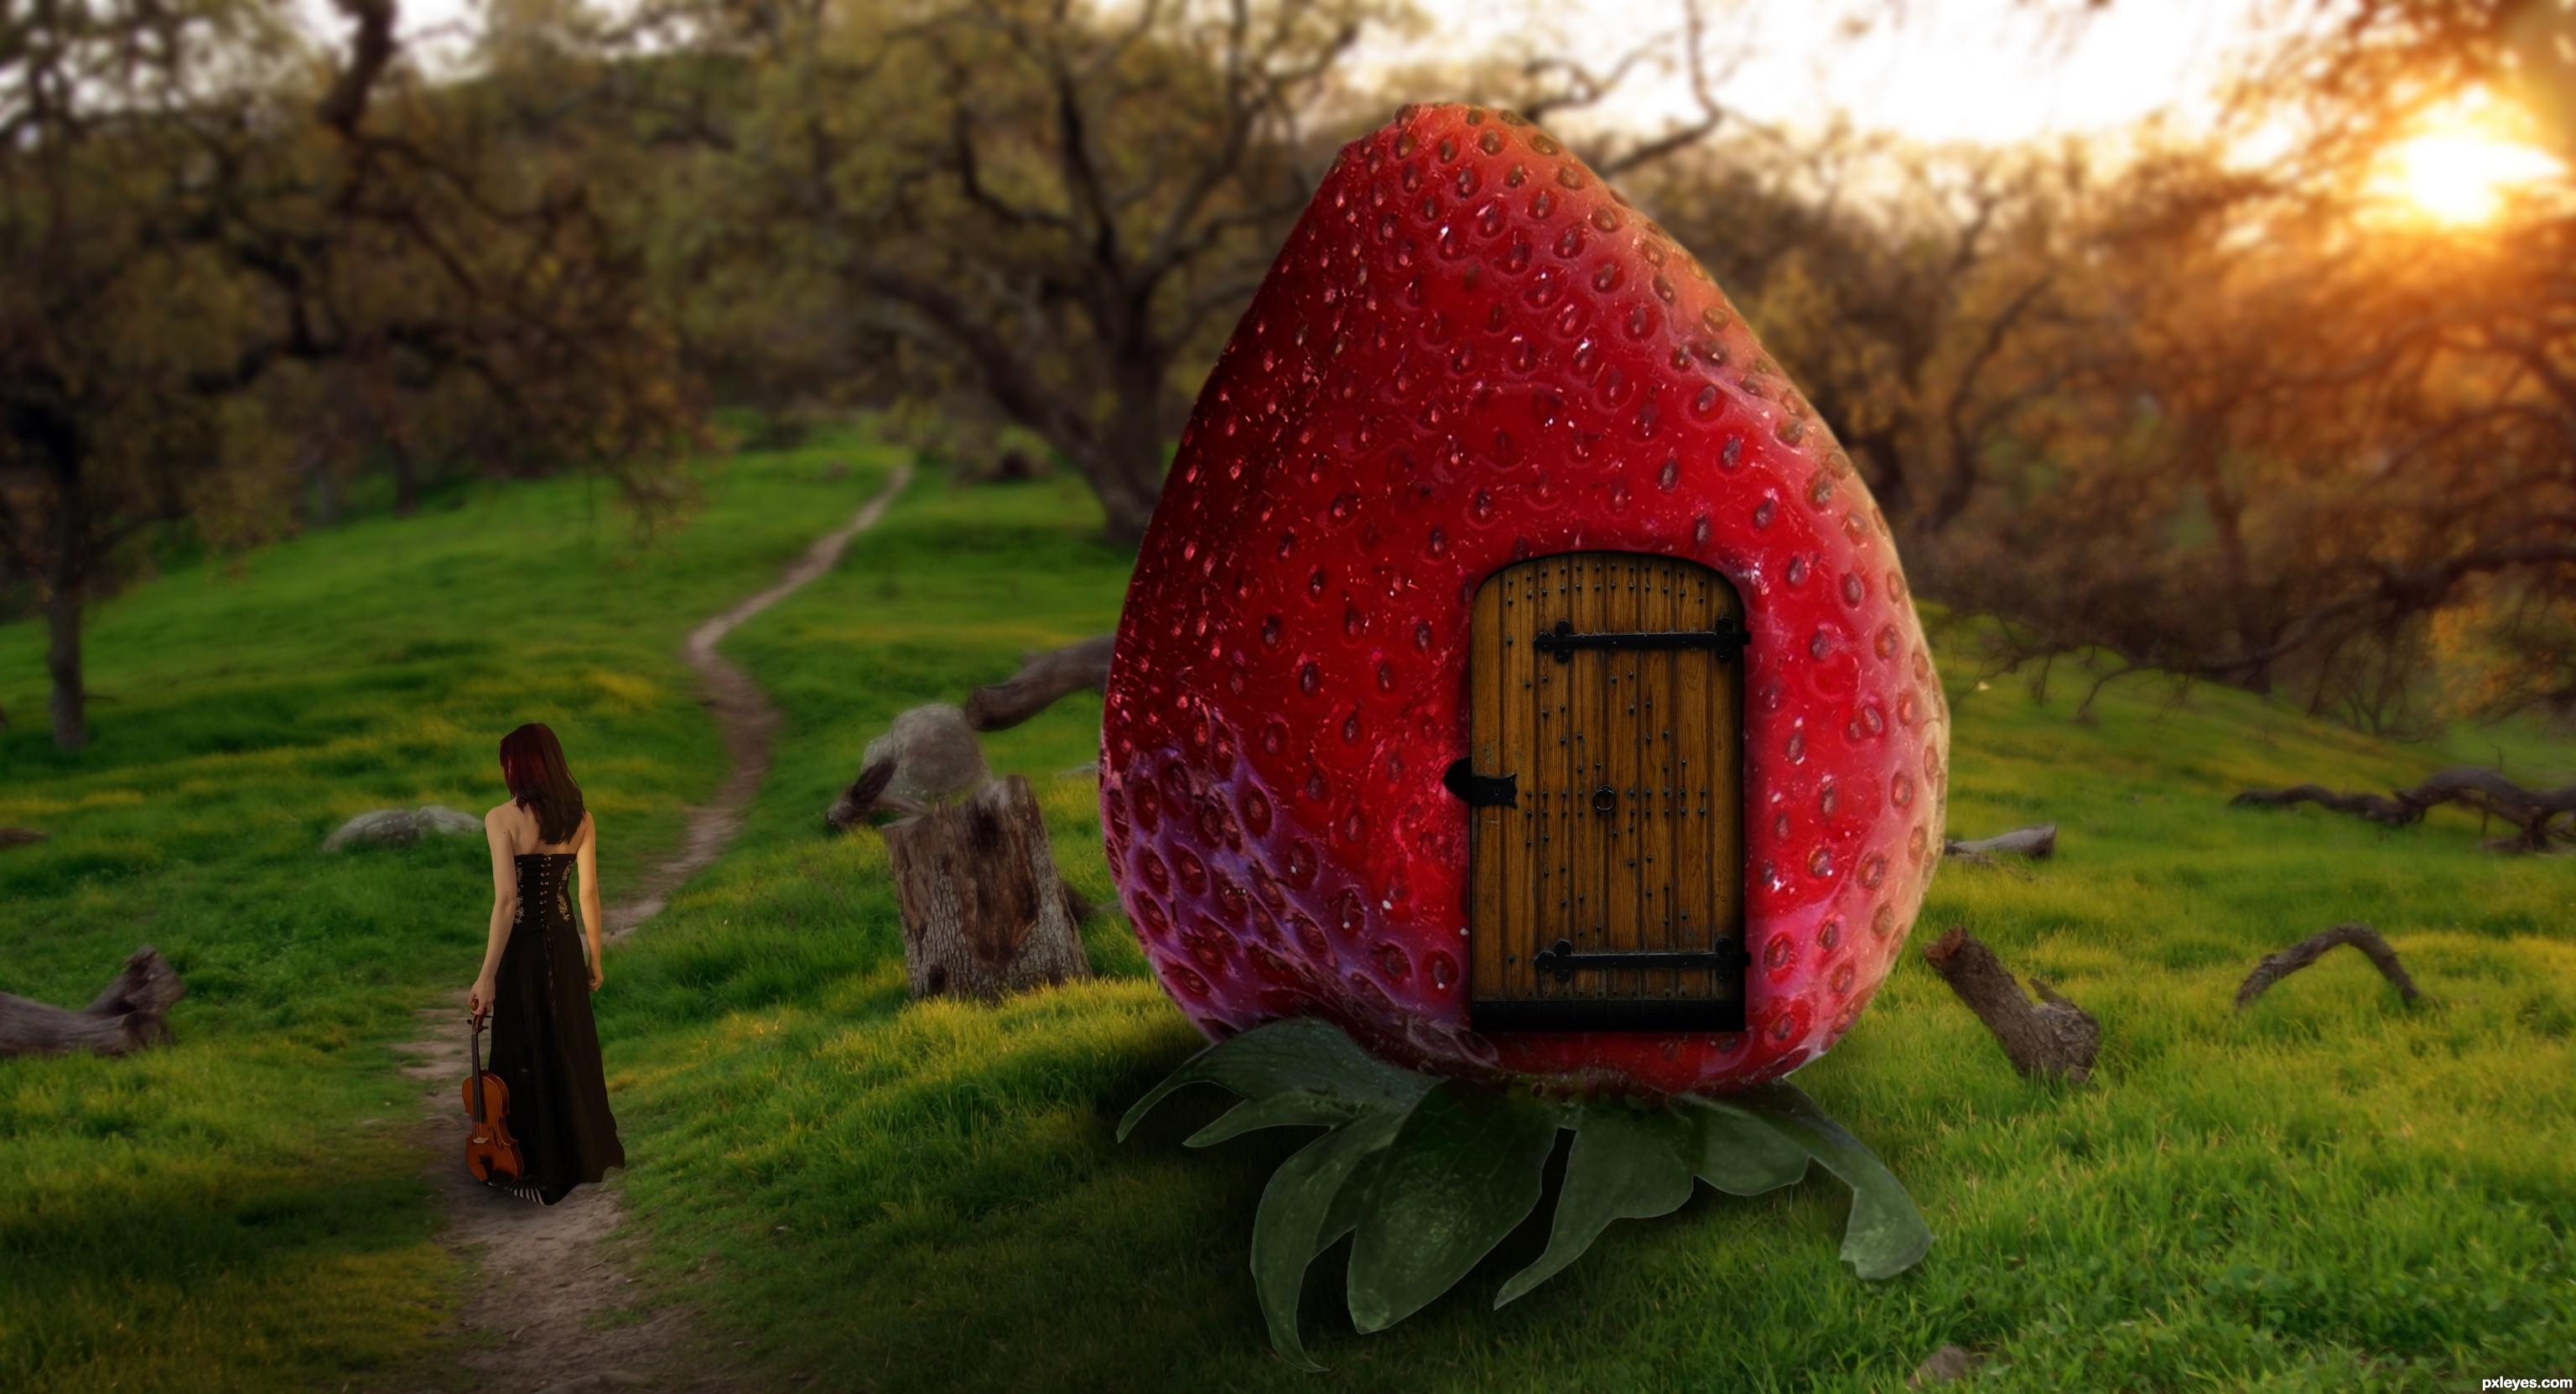 Gnome 4: Music Gnome Picture, By Blindscientist For: Strawberries